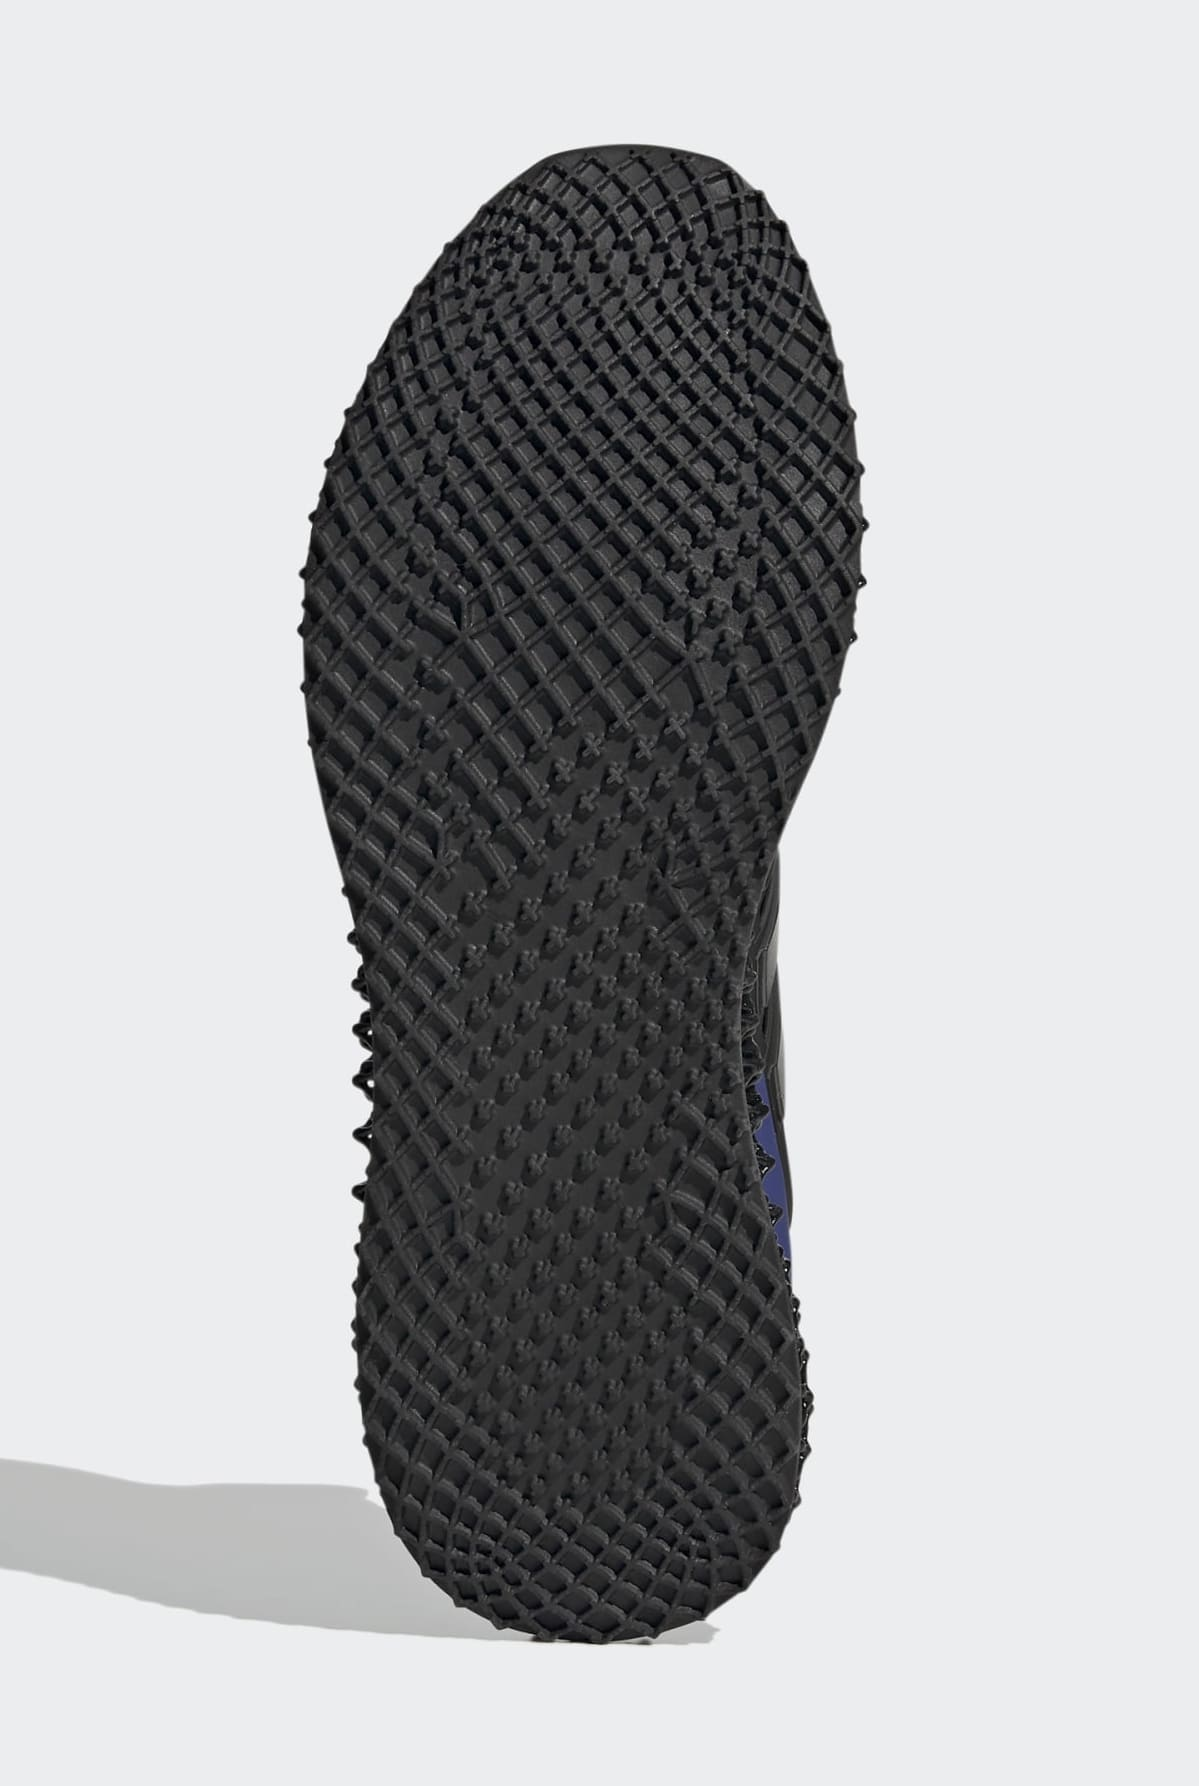 Adidas Ultra 4D 'OG' FW7089 Outsole